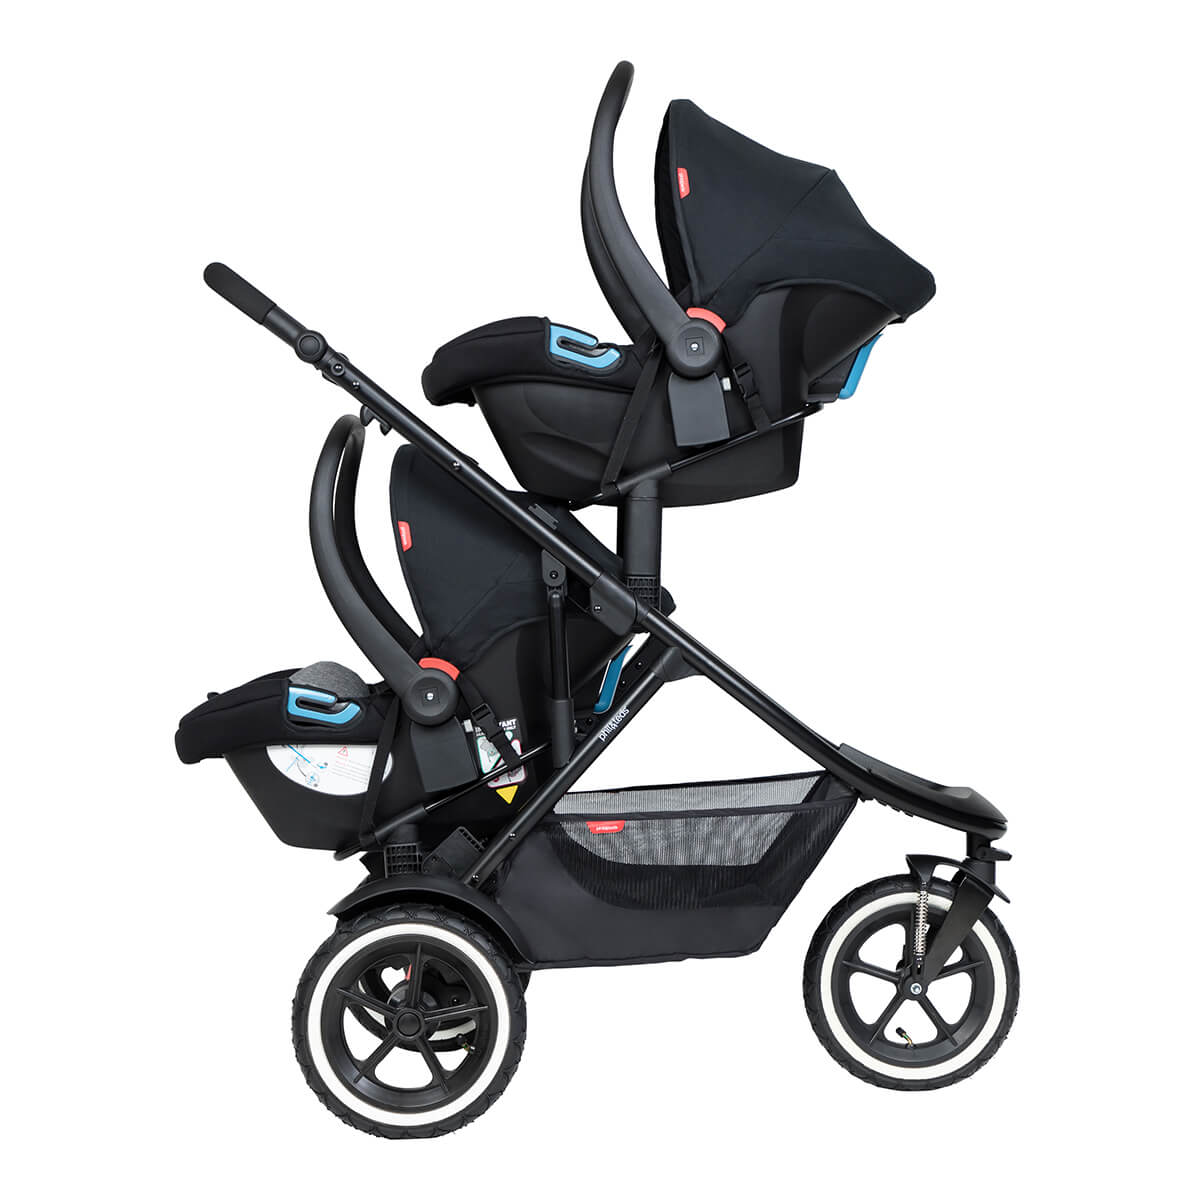 https://cdn.accentuate.io/4546157379689/19119322923113/philteds-sport-buggy-with-double-alpha-travel-system-v1625778188553.jpg?1200x1200